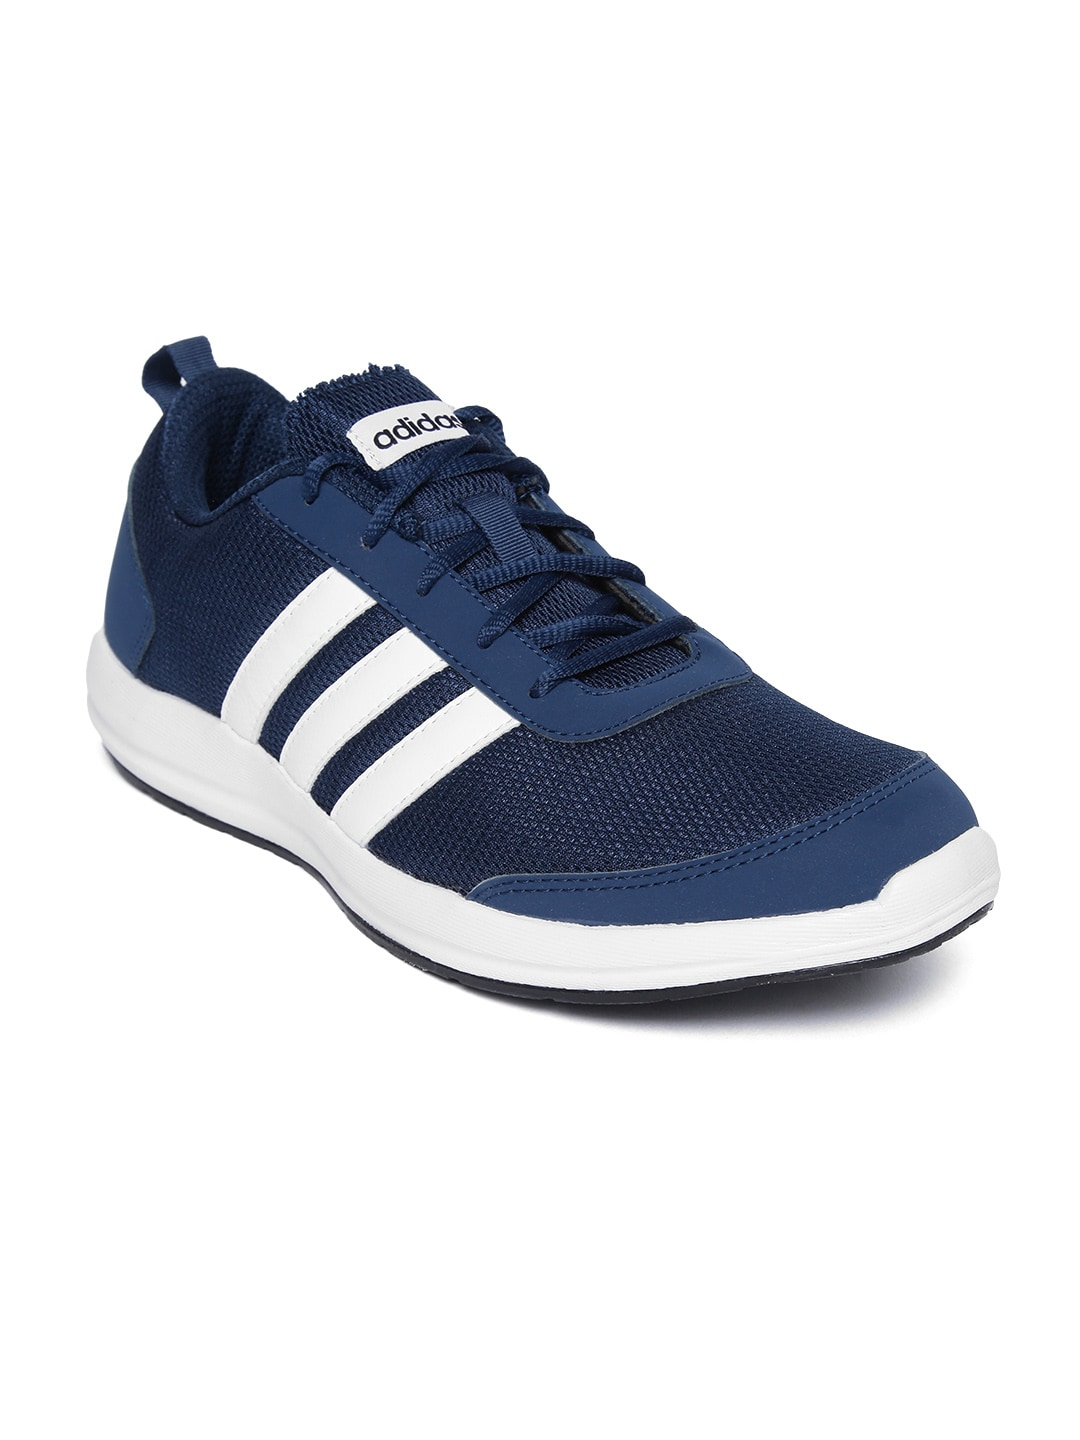 a575ed76c30dd5 Adidas Shoes - Buy Adidas Shoes for Men   Women Online - Myntra